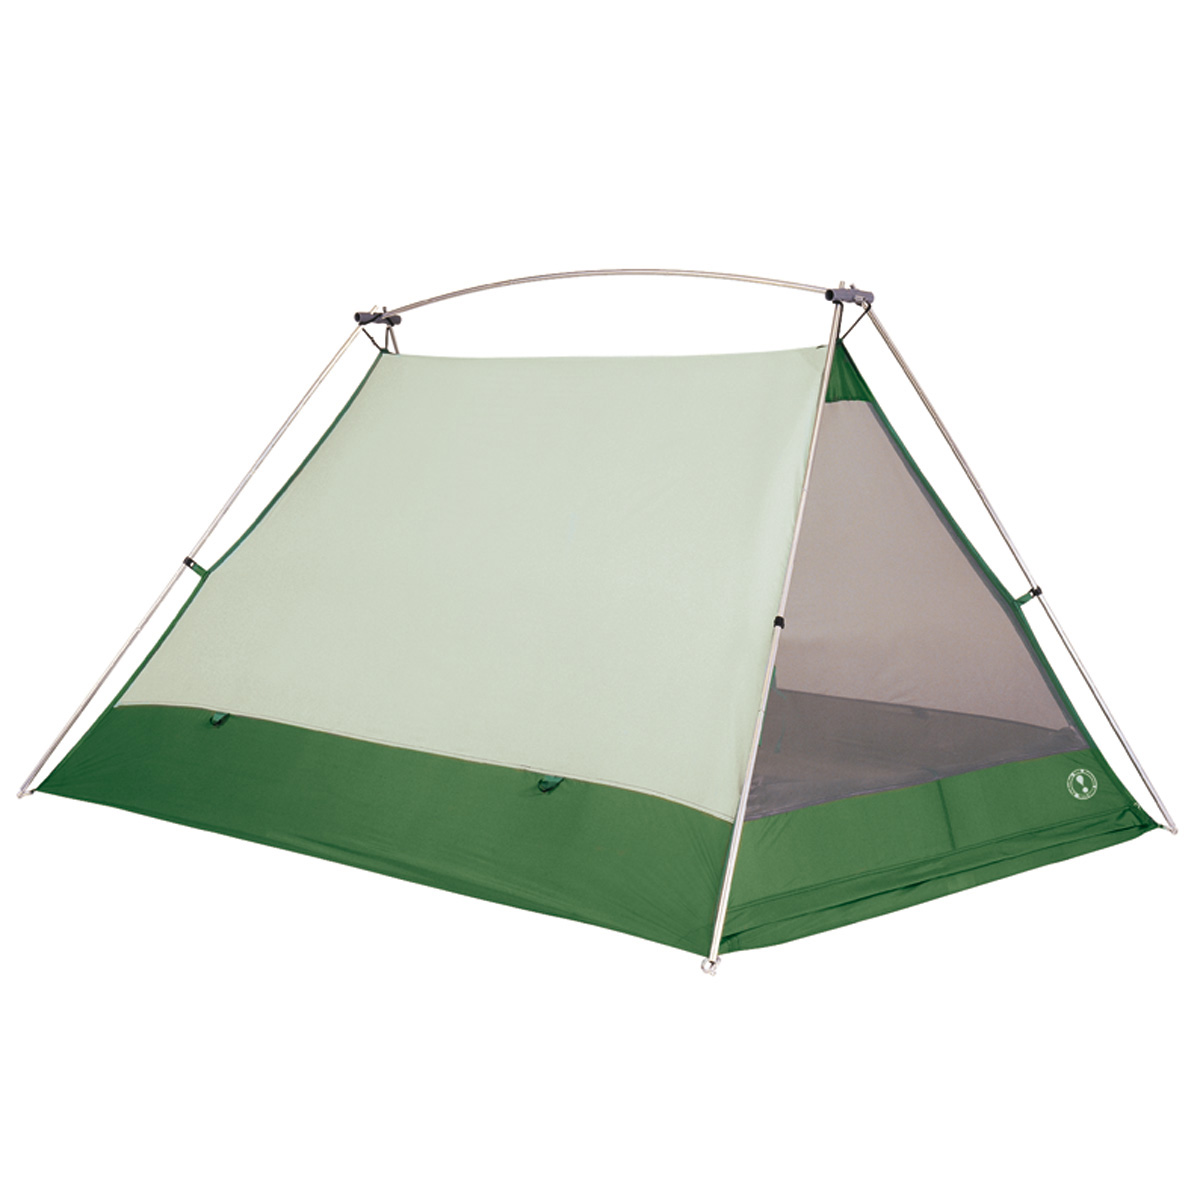 Timberline® 2 Person Tent  sc 1 st  Tents | Eureka! - Johnson Outdoors & 498534_primary.jpg